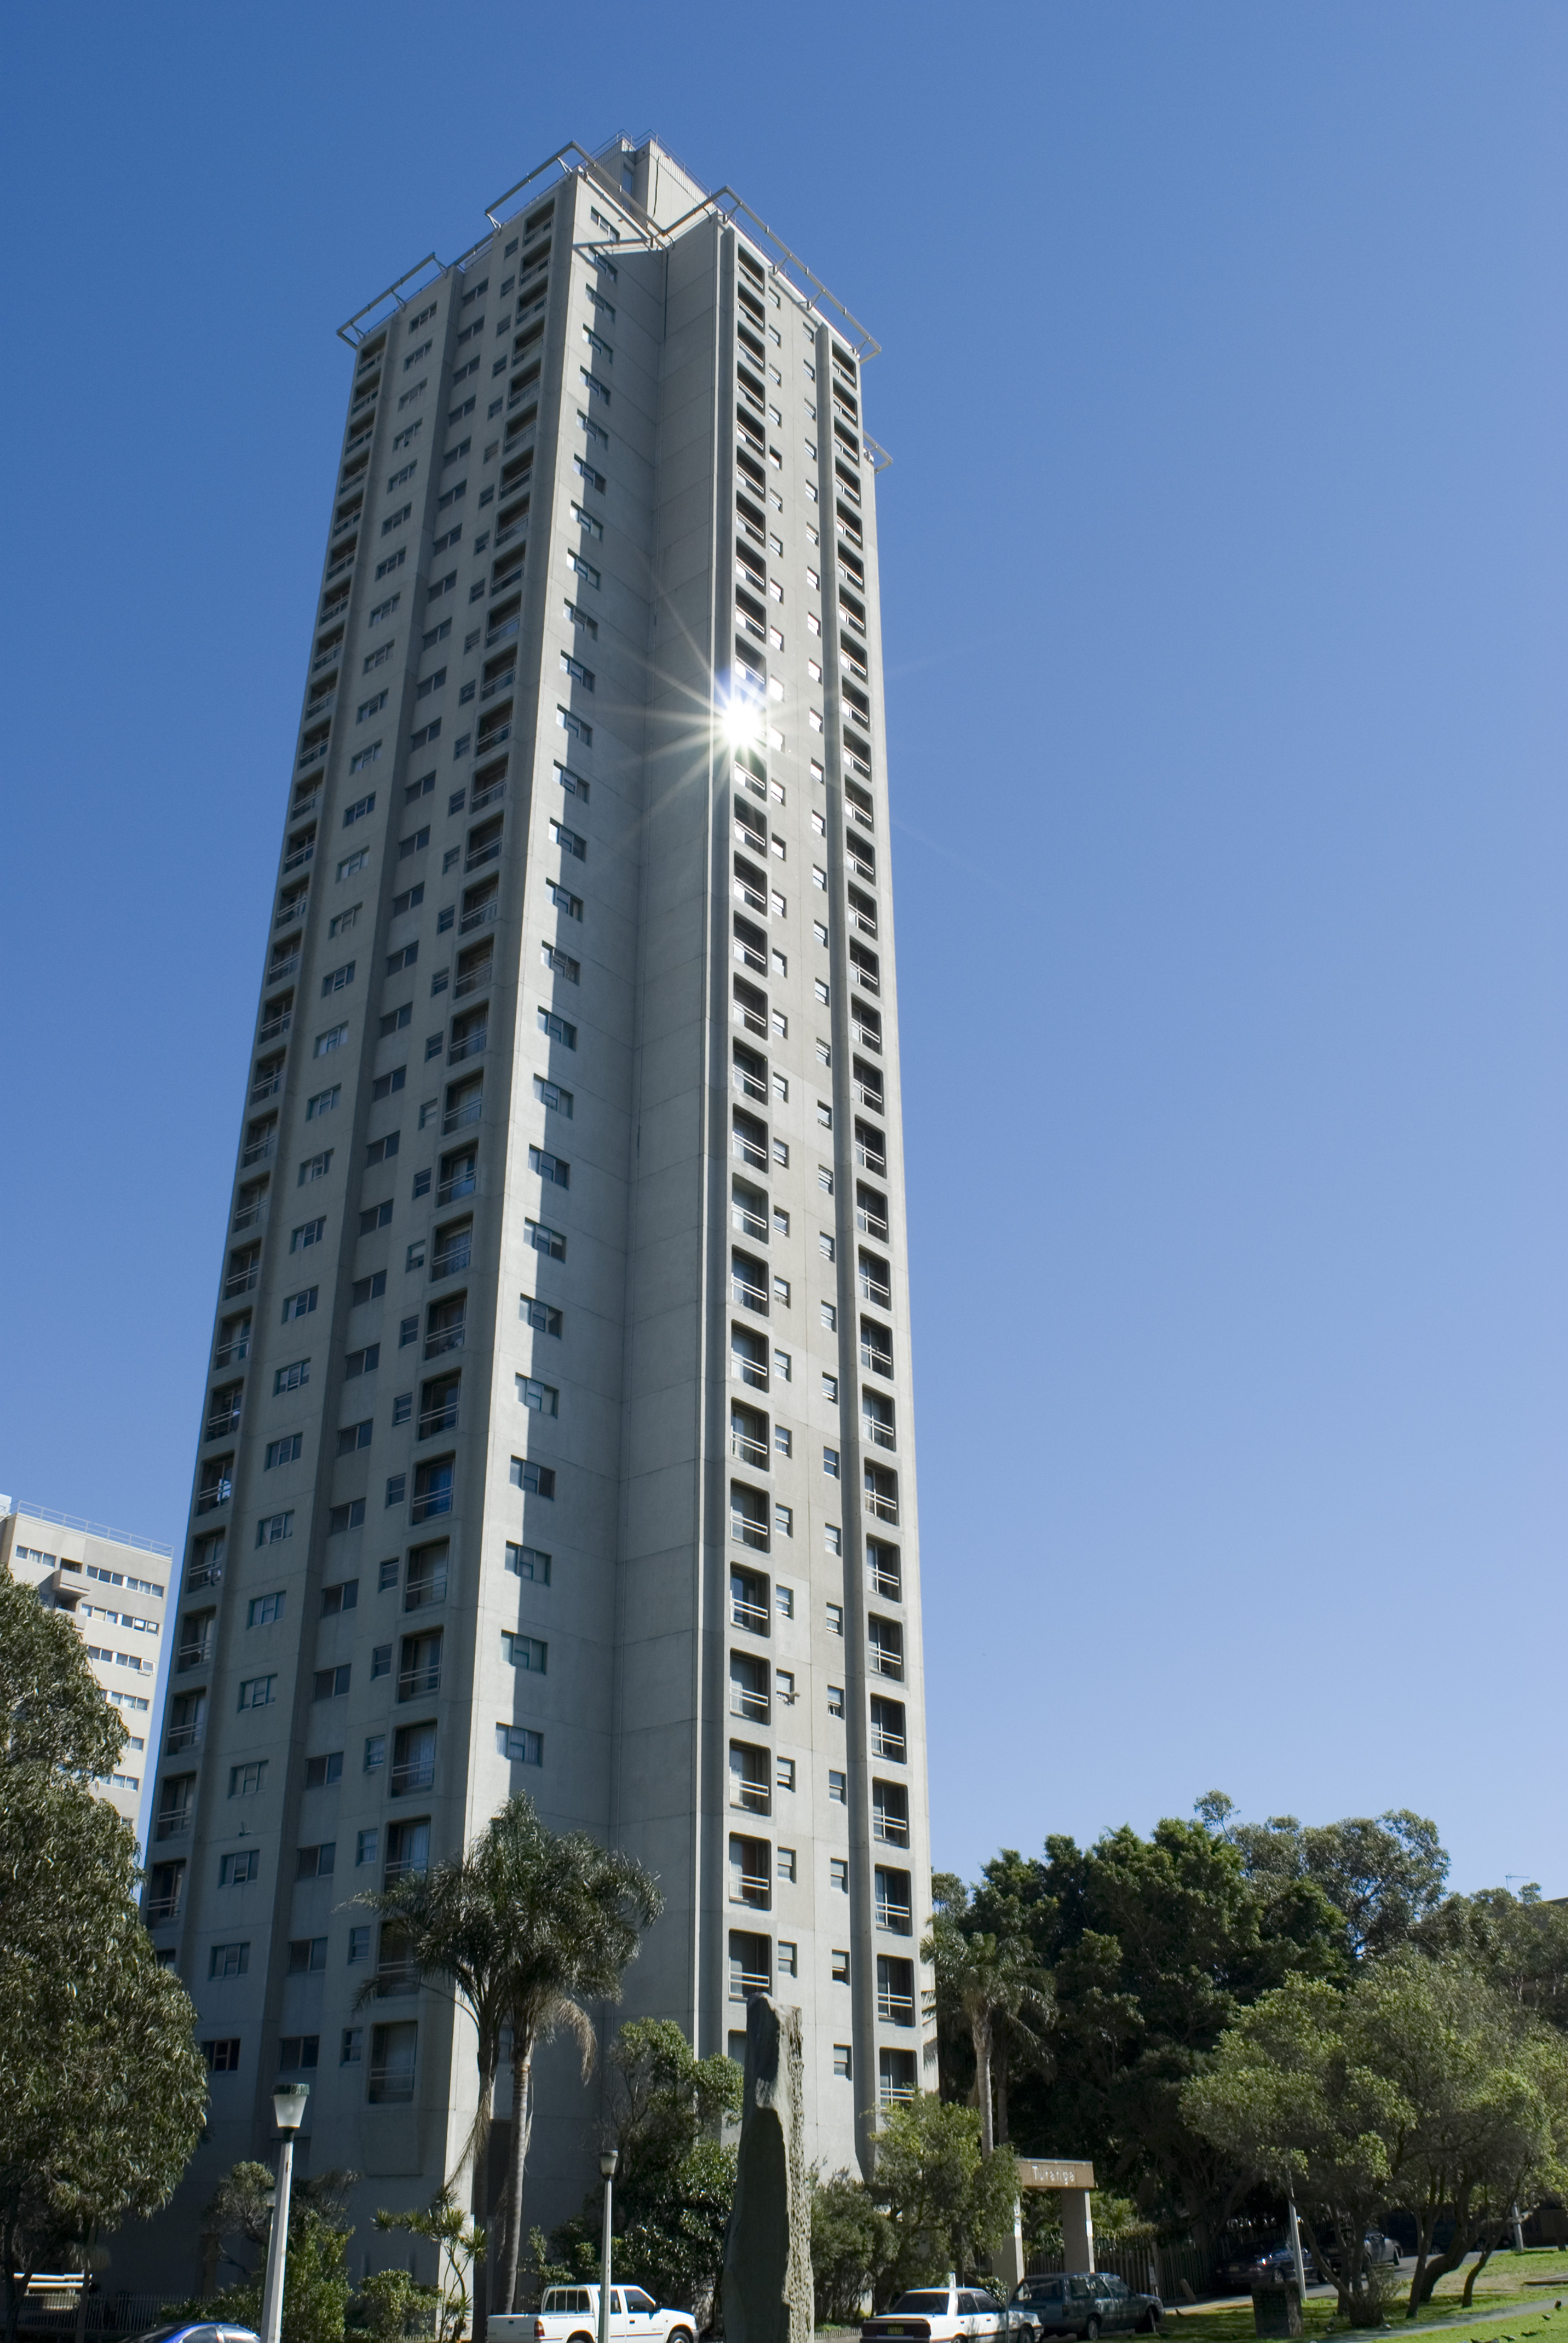 tower blocks sydney | Free backgrounds and textures ...